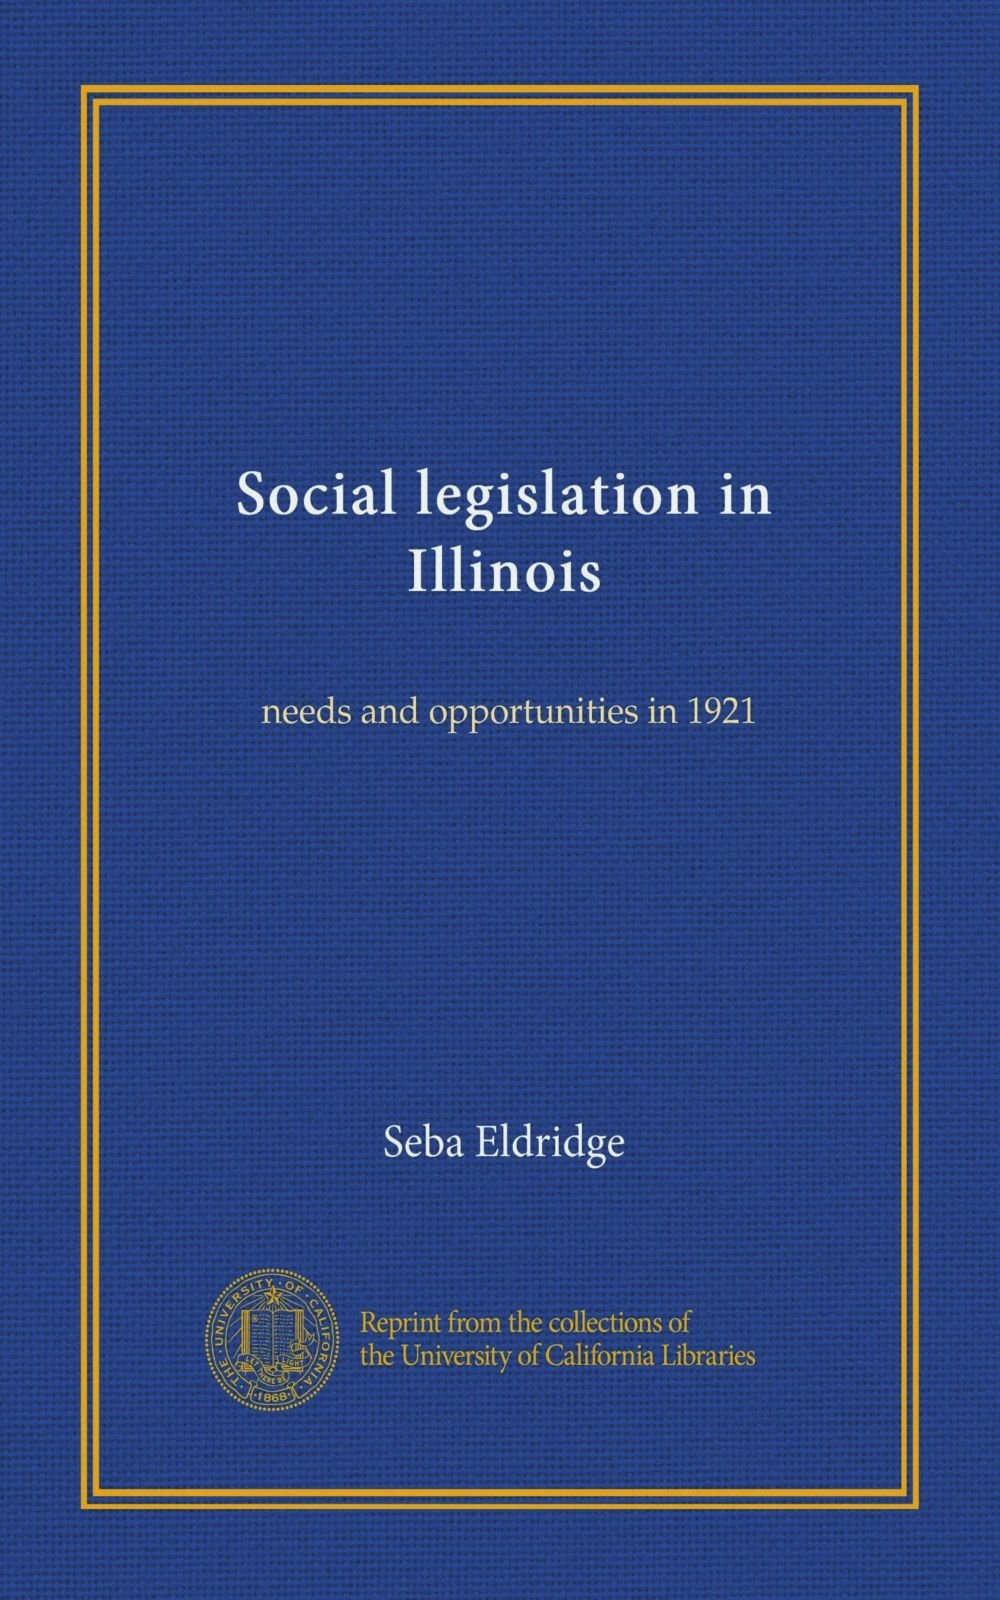 Download Social legislation in Illinois: needs and opportunities in 1921 pdf